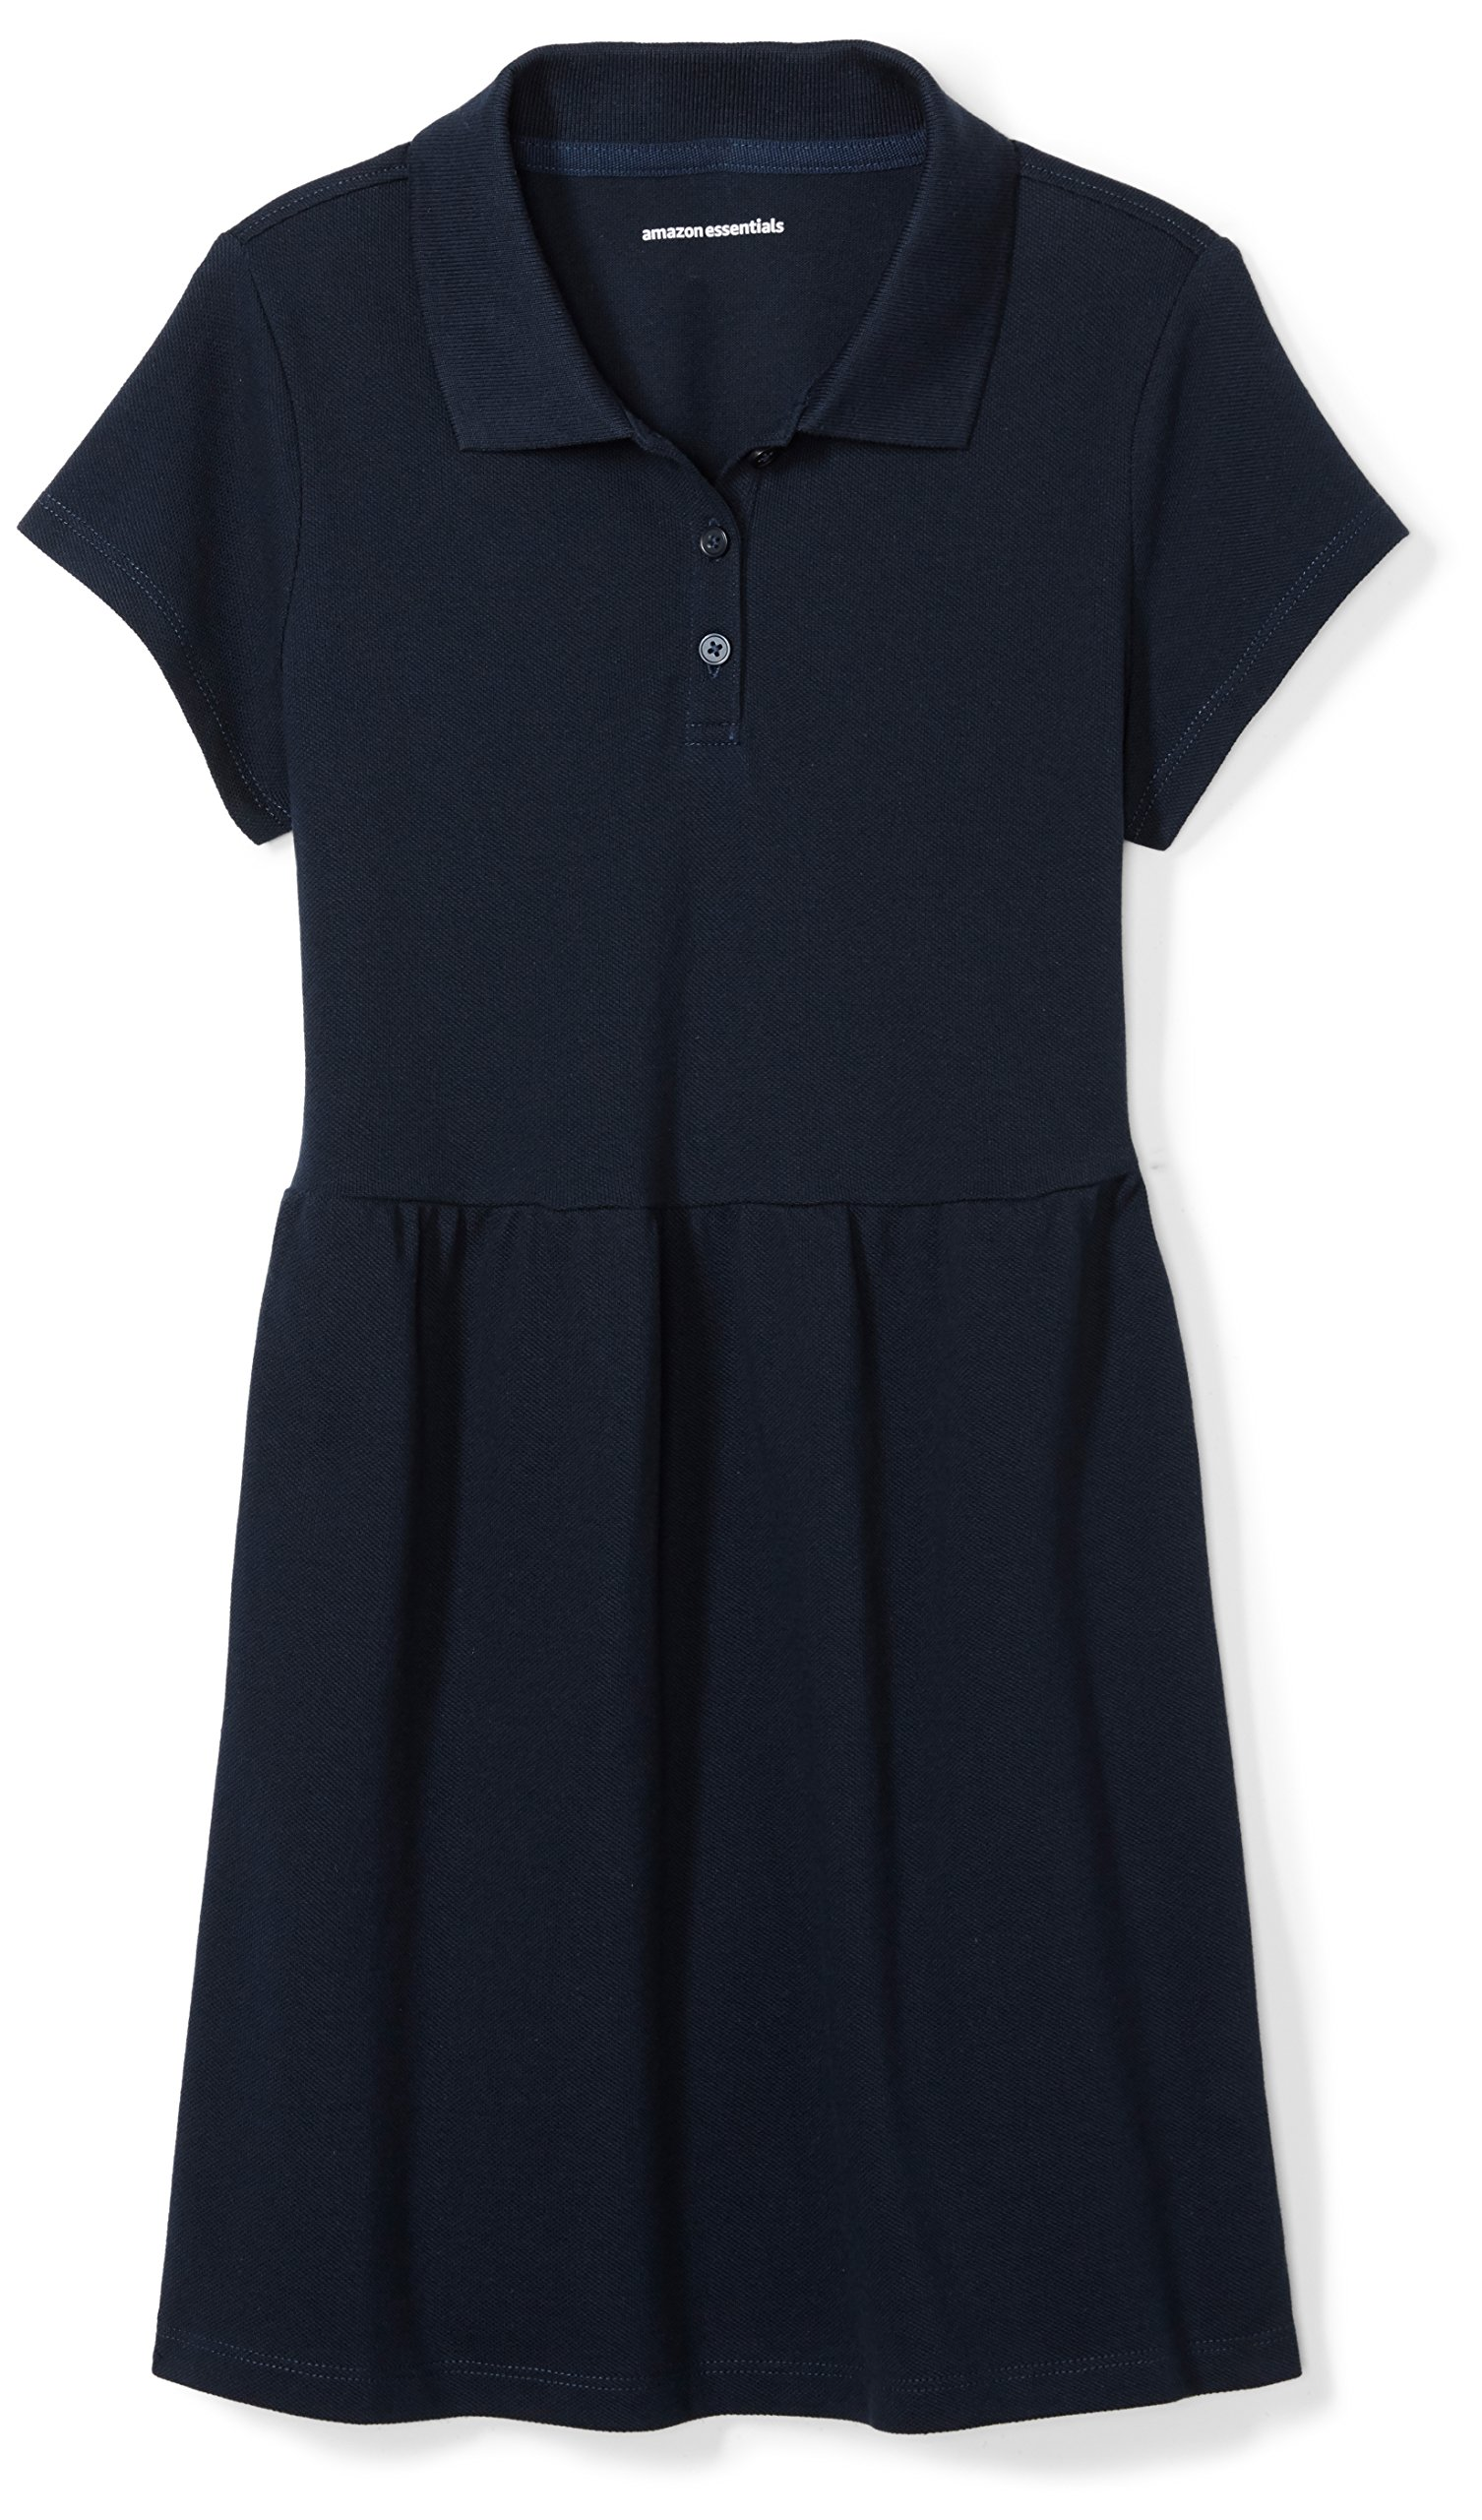 Amazon Essentials Girls' Short-Sleeve Polo Dress, Navy, S (6-7)